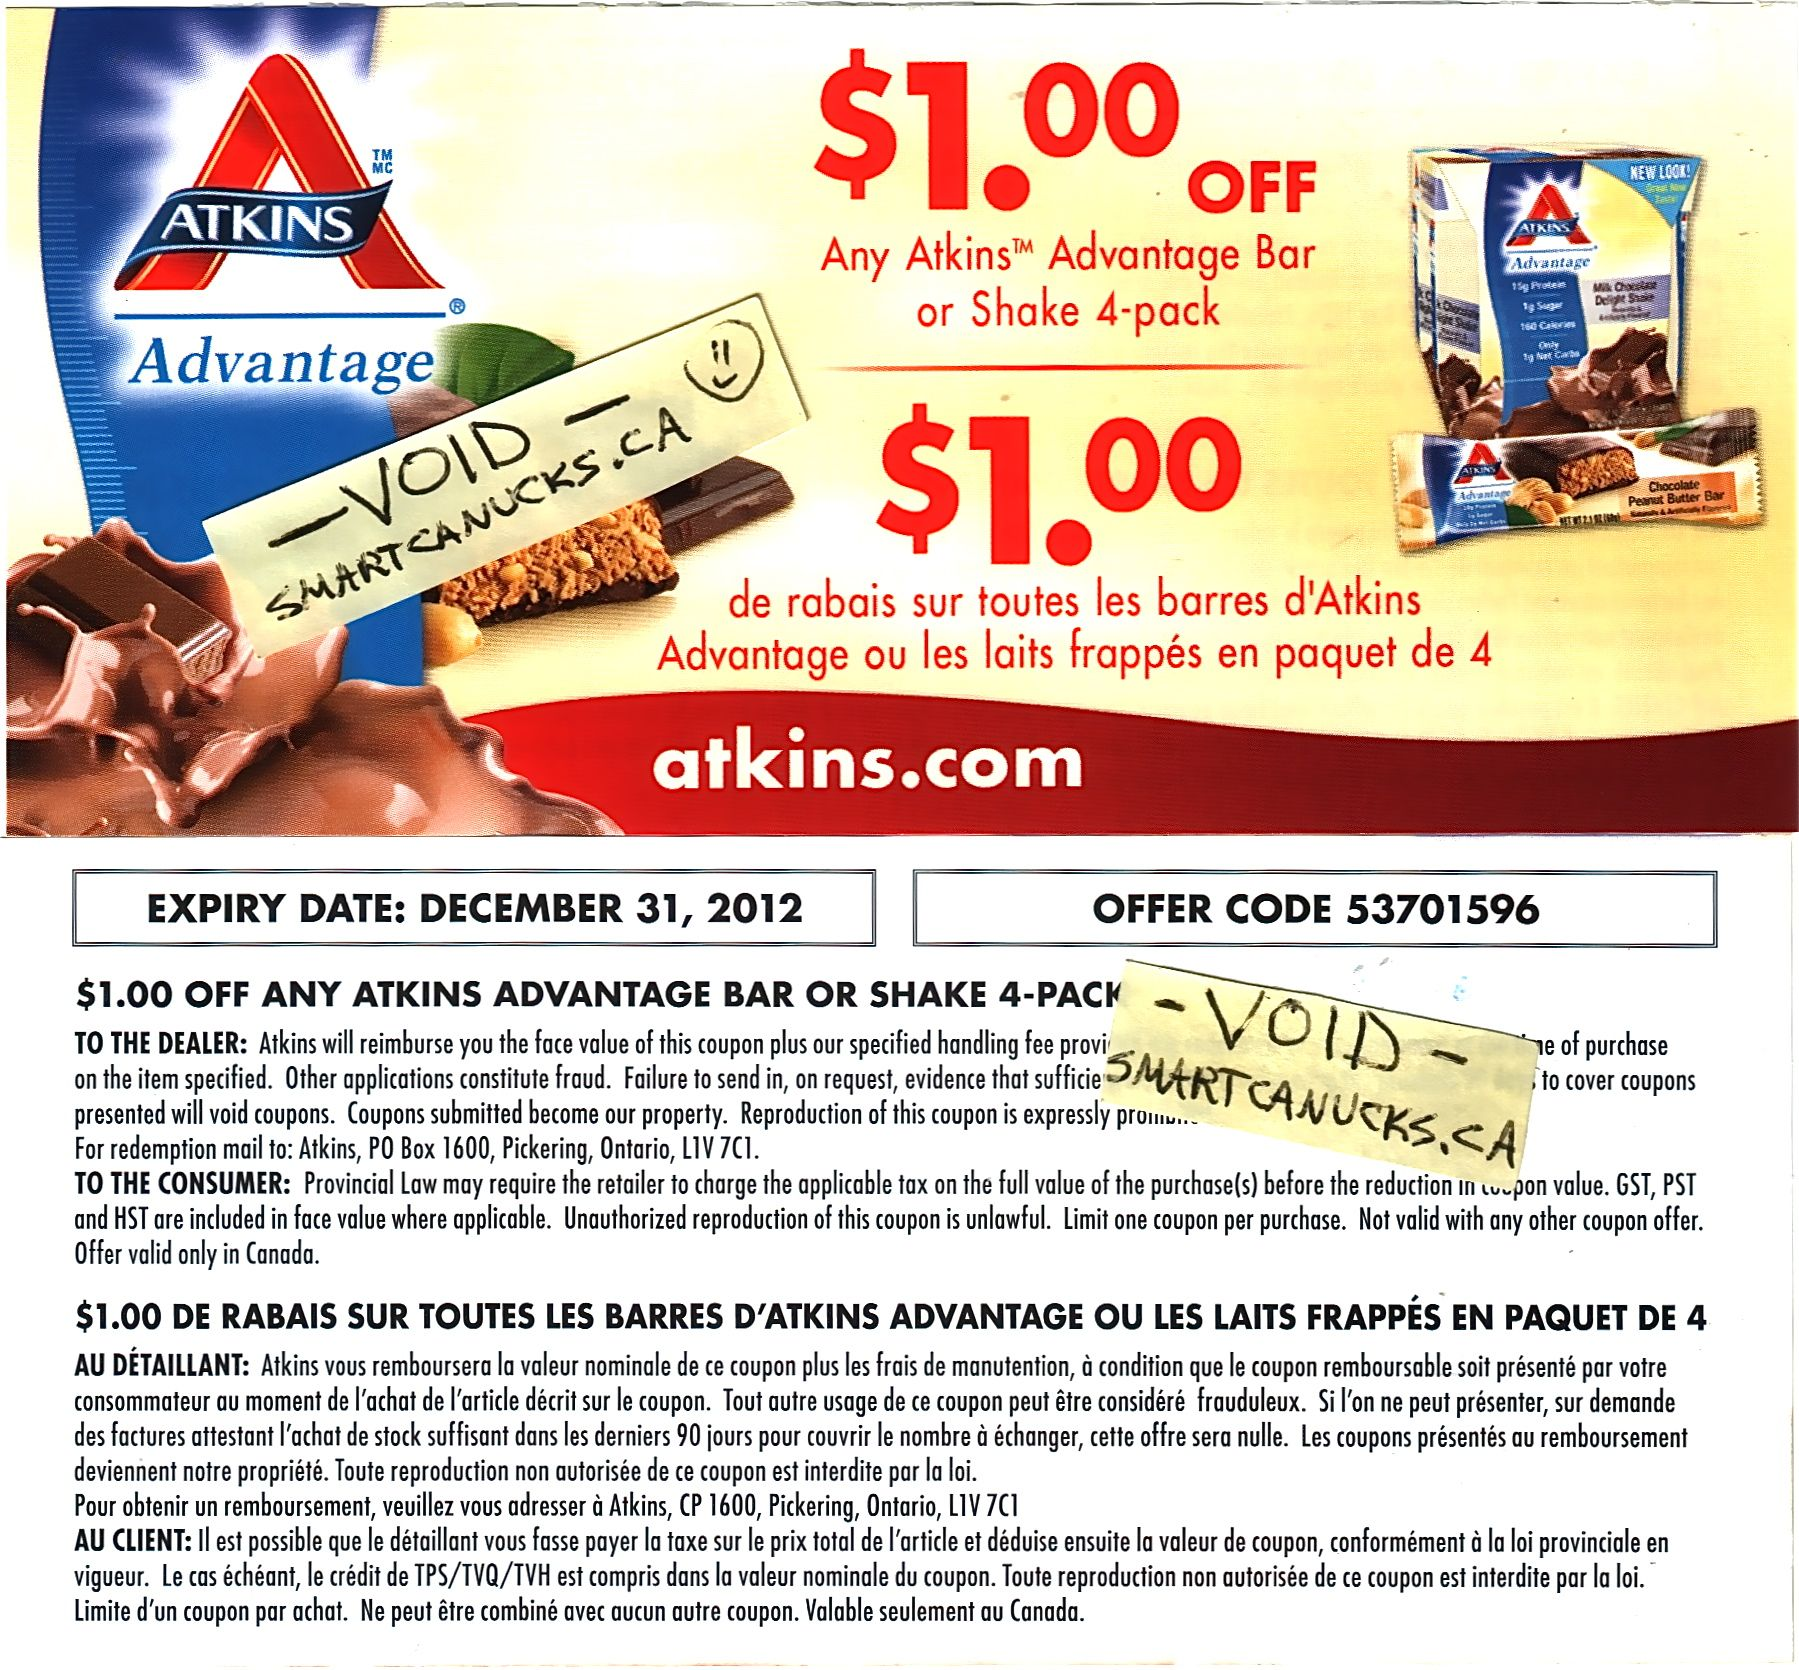 image regarding Atkins Coupon Printable identify Atkins diet regime solutions discount codes - Ea origin coupon